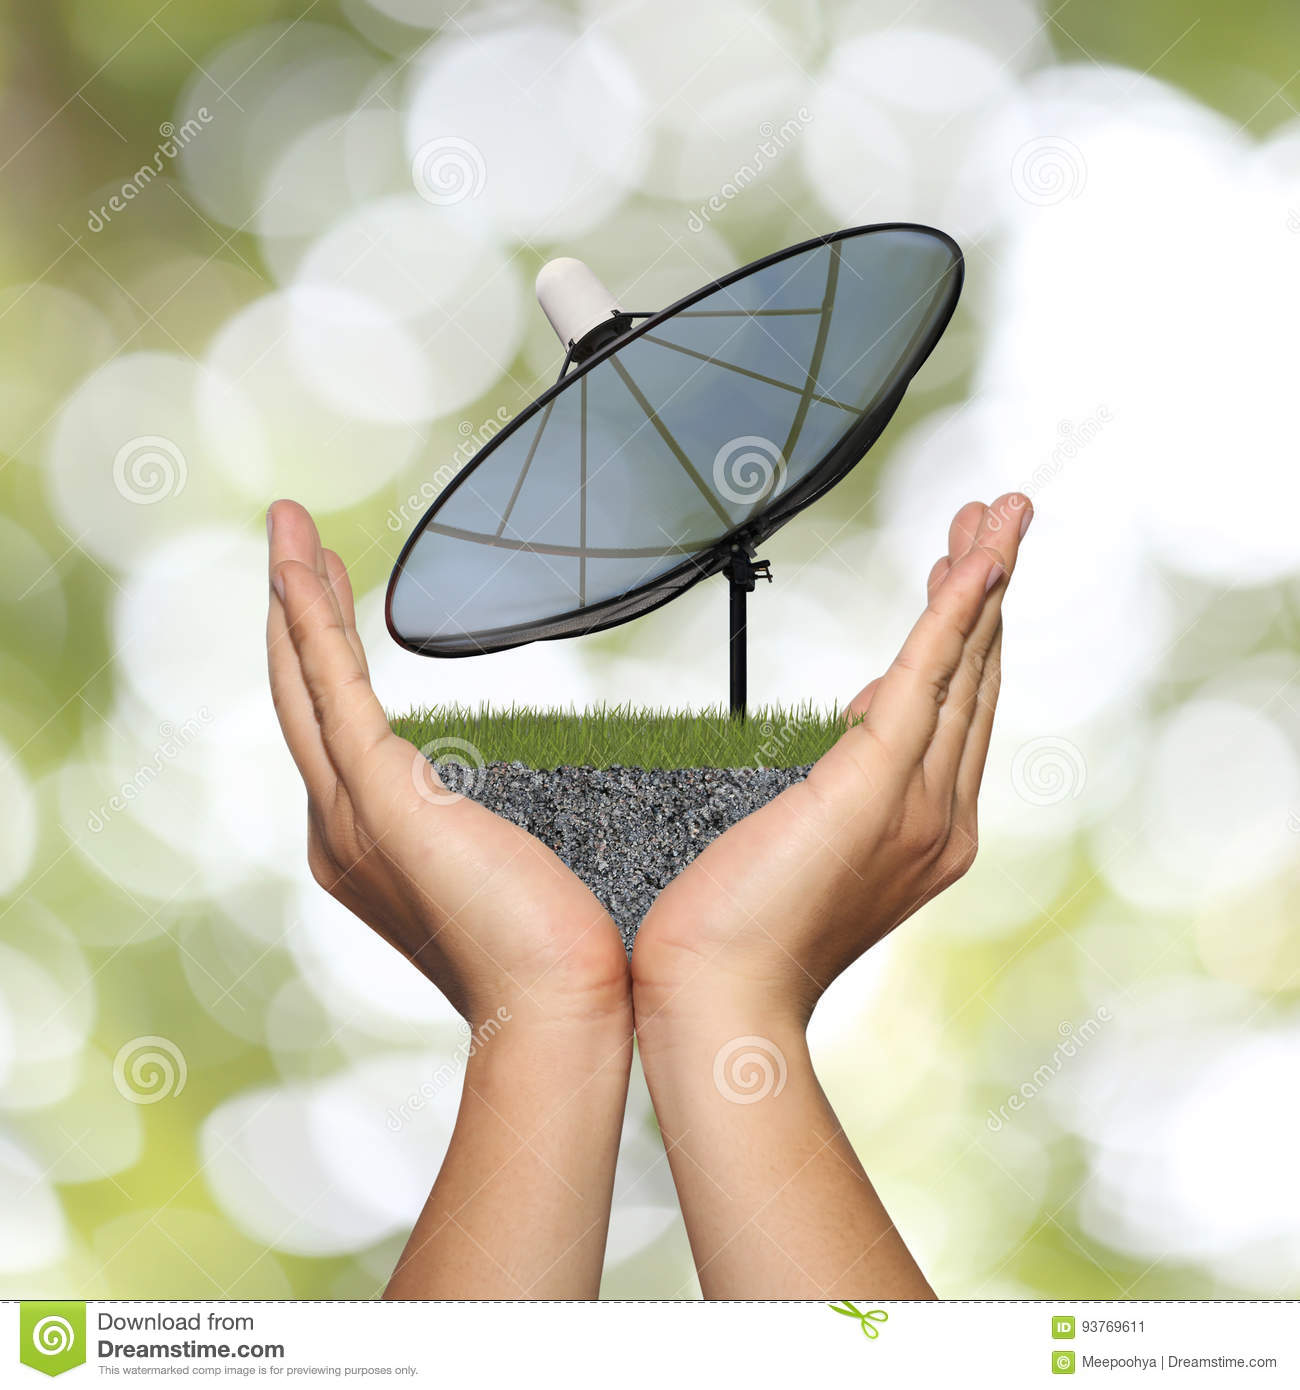 Satellite dish with own hands